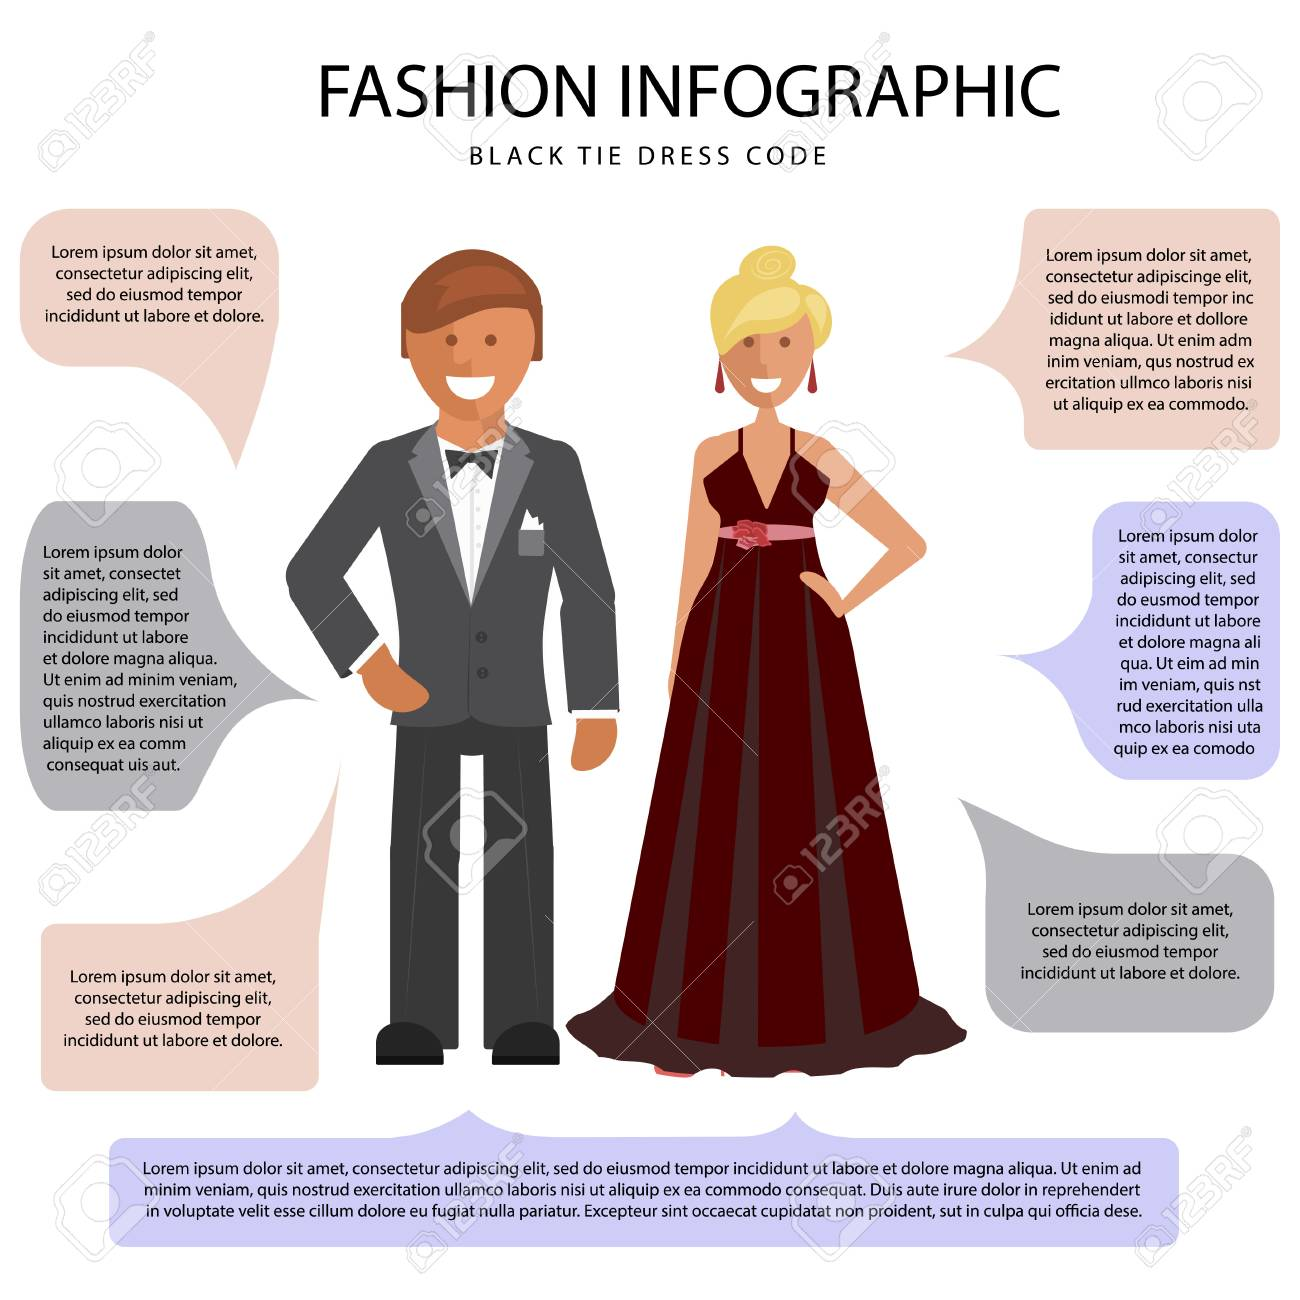 Black Tie Dress Code Infographic Man And Woman Isolated On White Royalty Free Cliparts Vectors And Stock Illustration Image 94798718